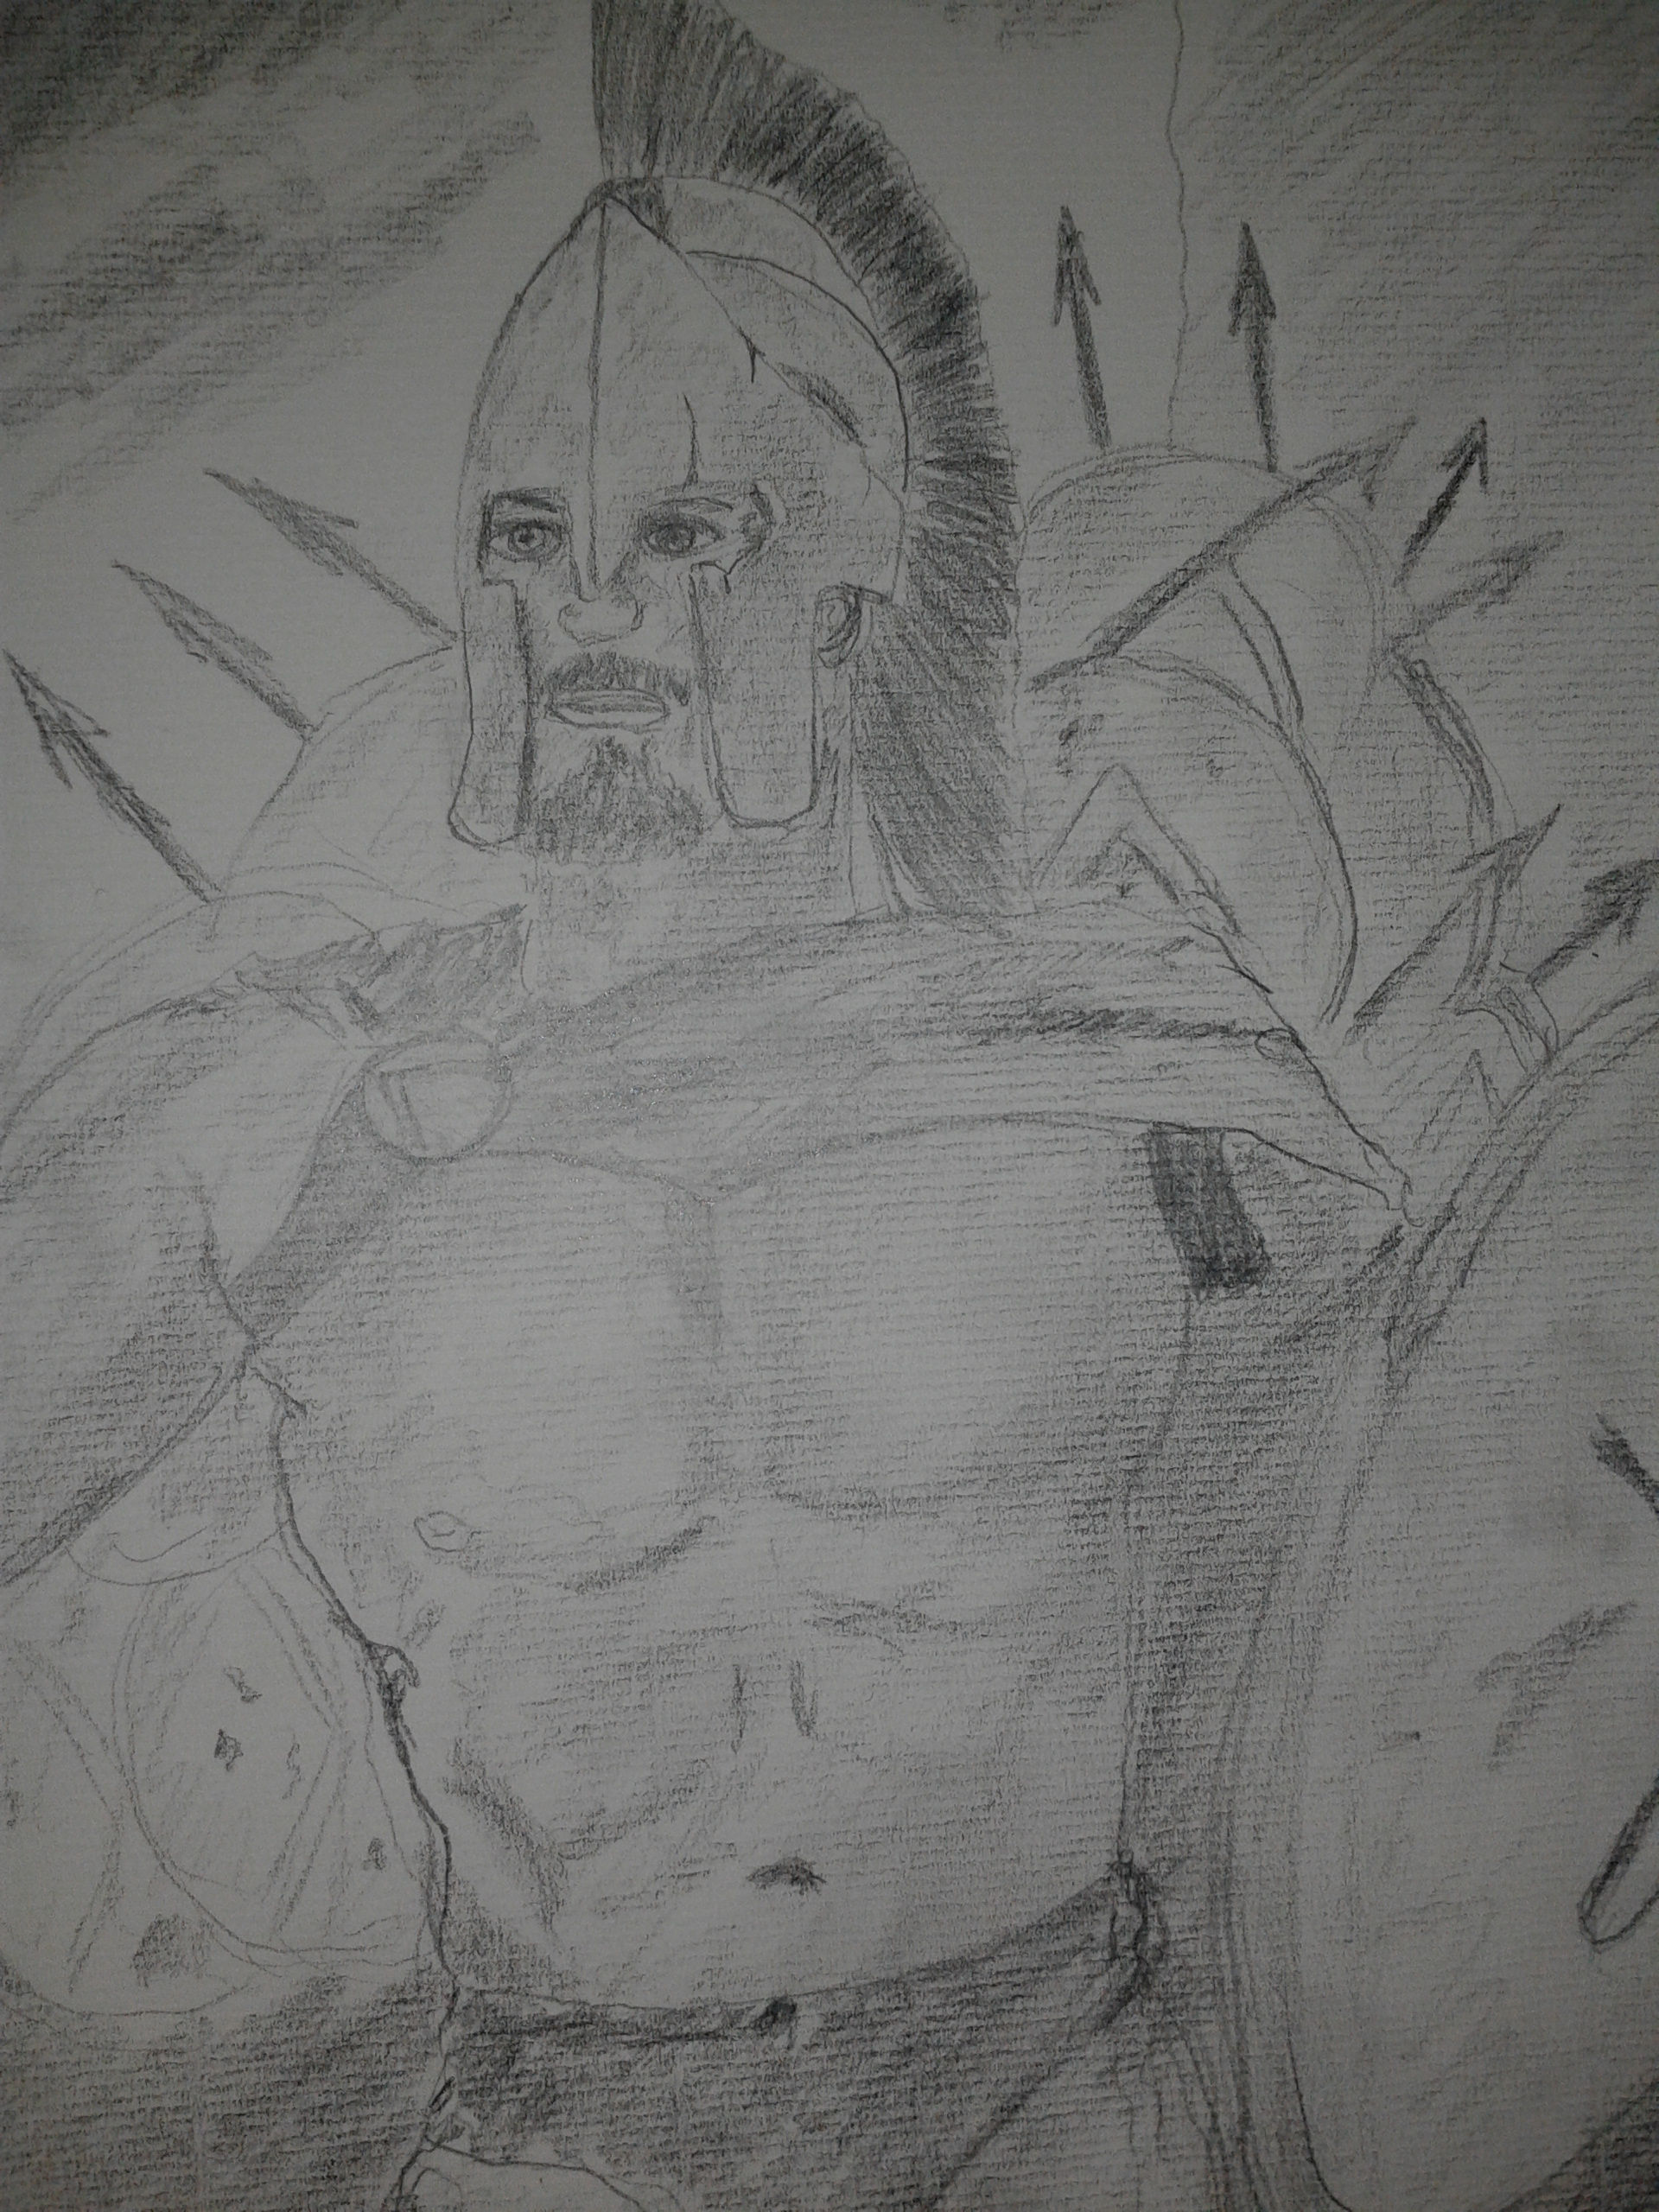 fc03.deviantart.net/fs71/f/2012/351/6/5/leonidas_sketch_by_ghostdogcs-d5ob4nv.jpg